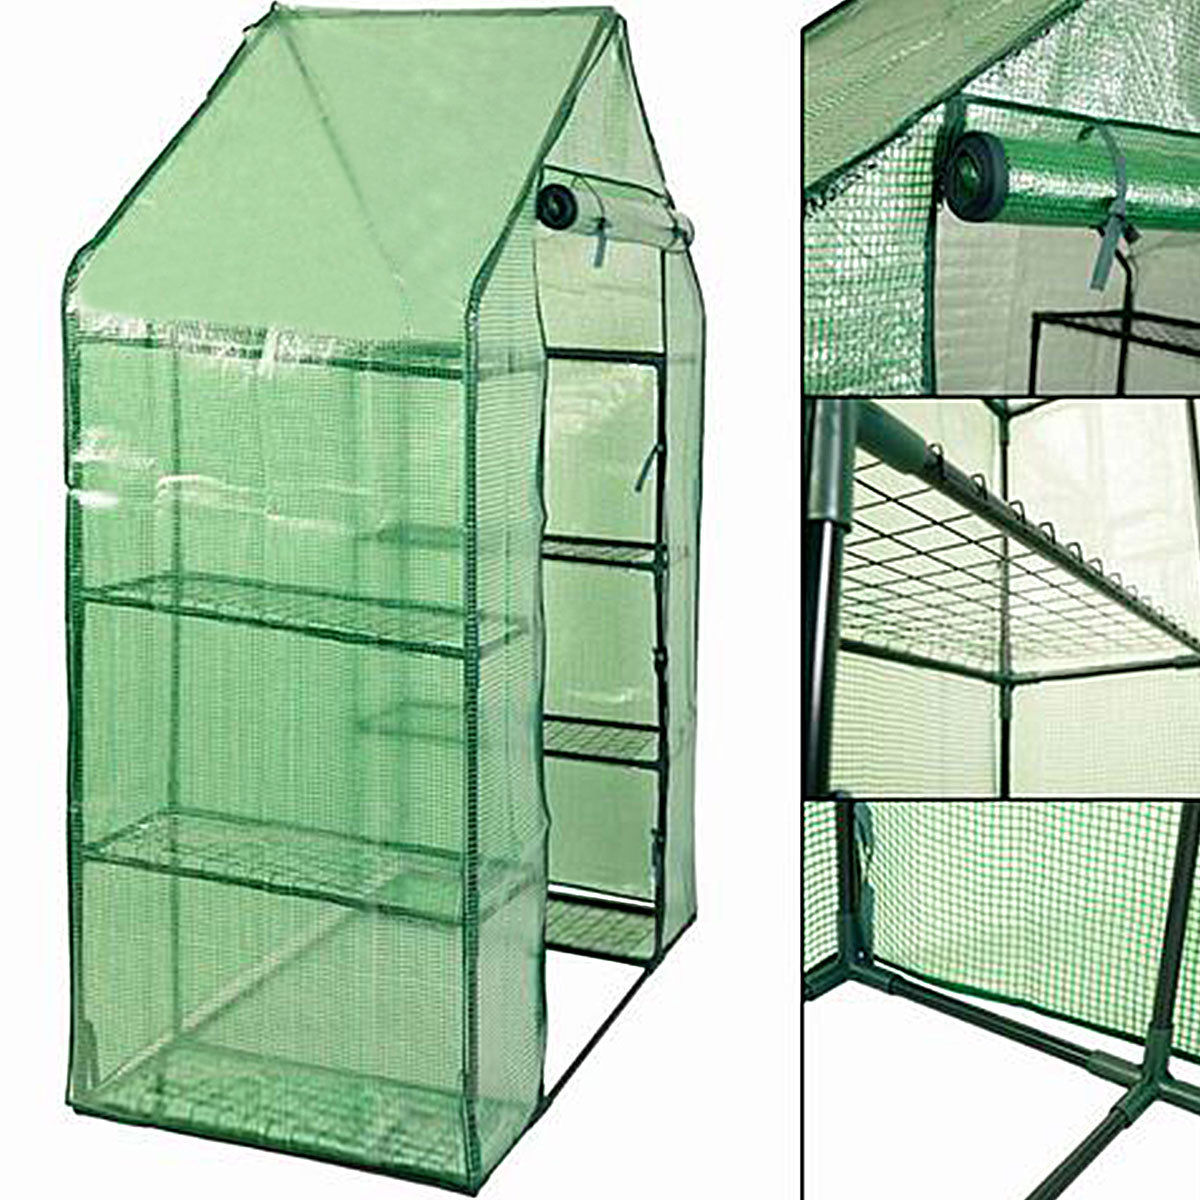 Portable Mini Walk In Outdoor 4 Tier 8 Shelves Greenhouse - image 7 of 9